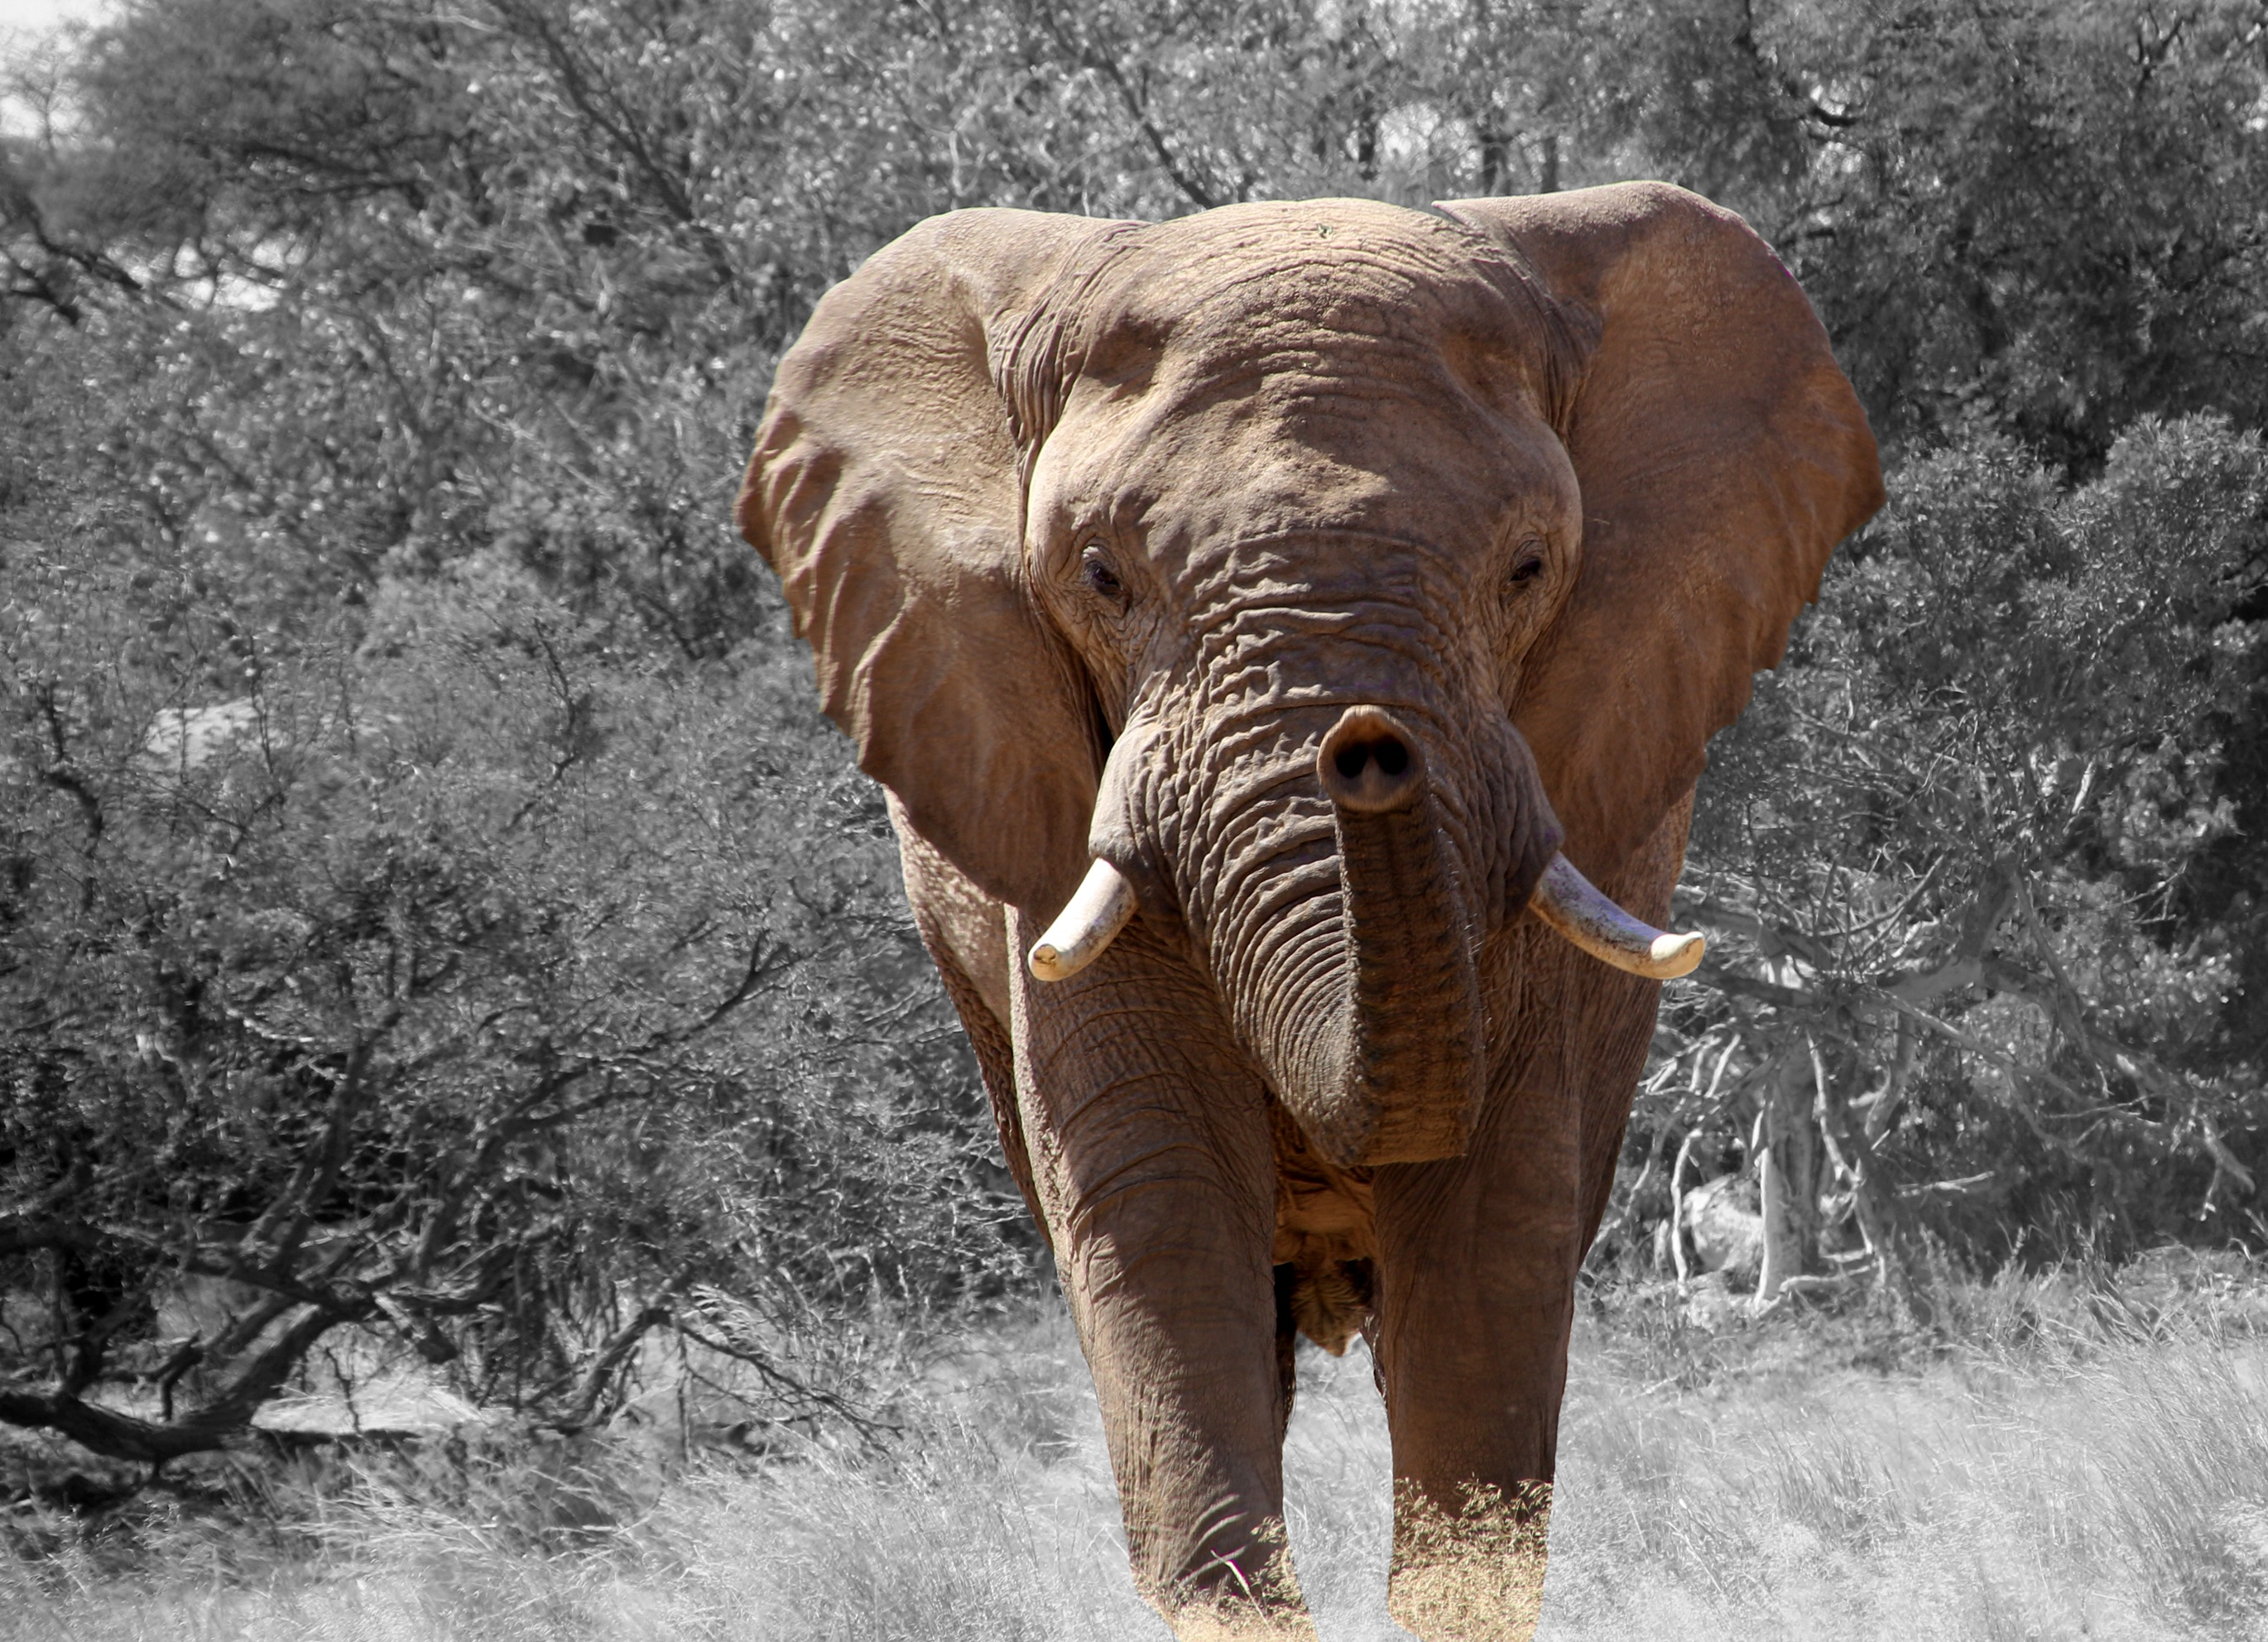 Beautiful Wallpapers For Iphone X Free Stock Photo Of Africa African Bush Elephant African